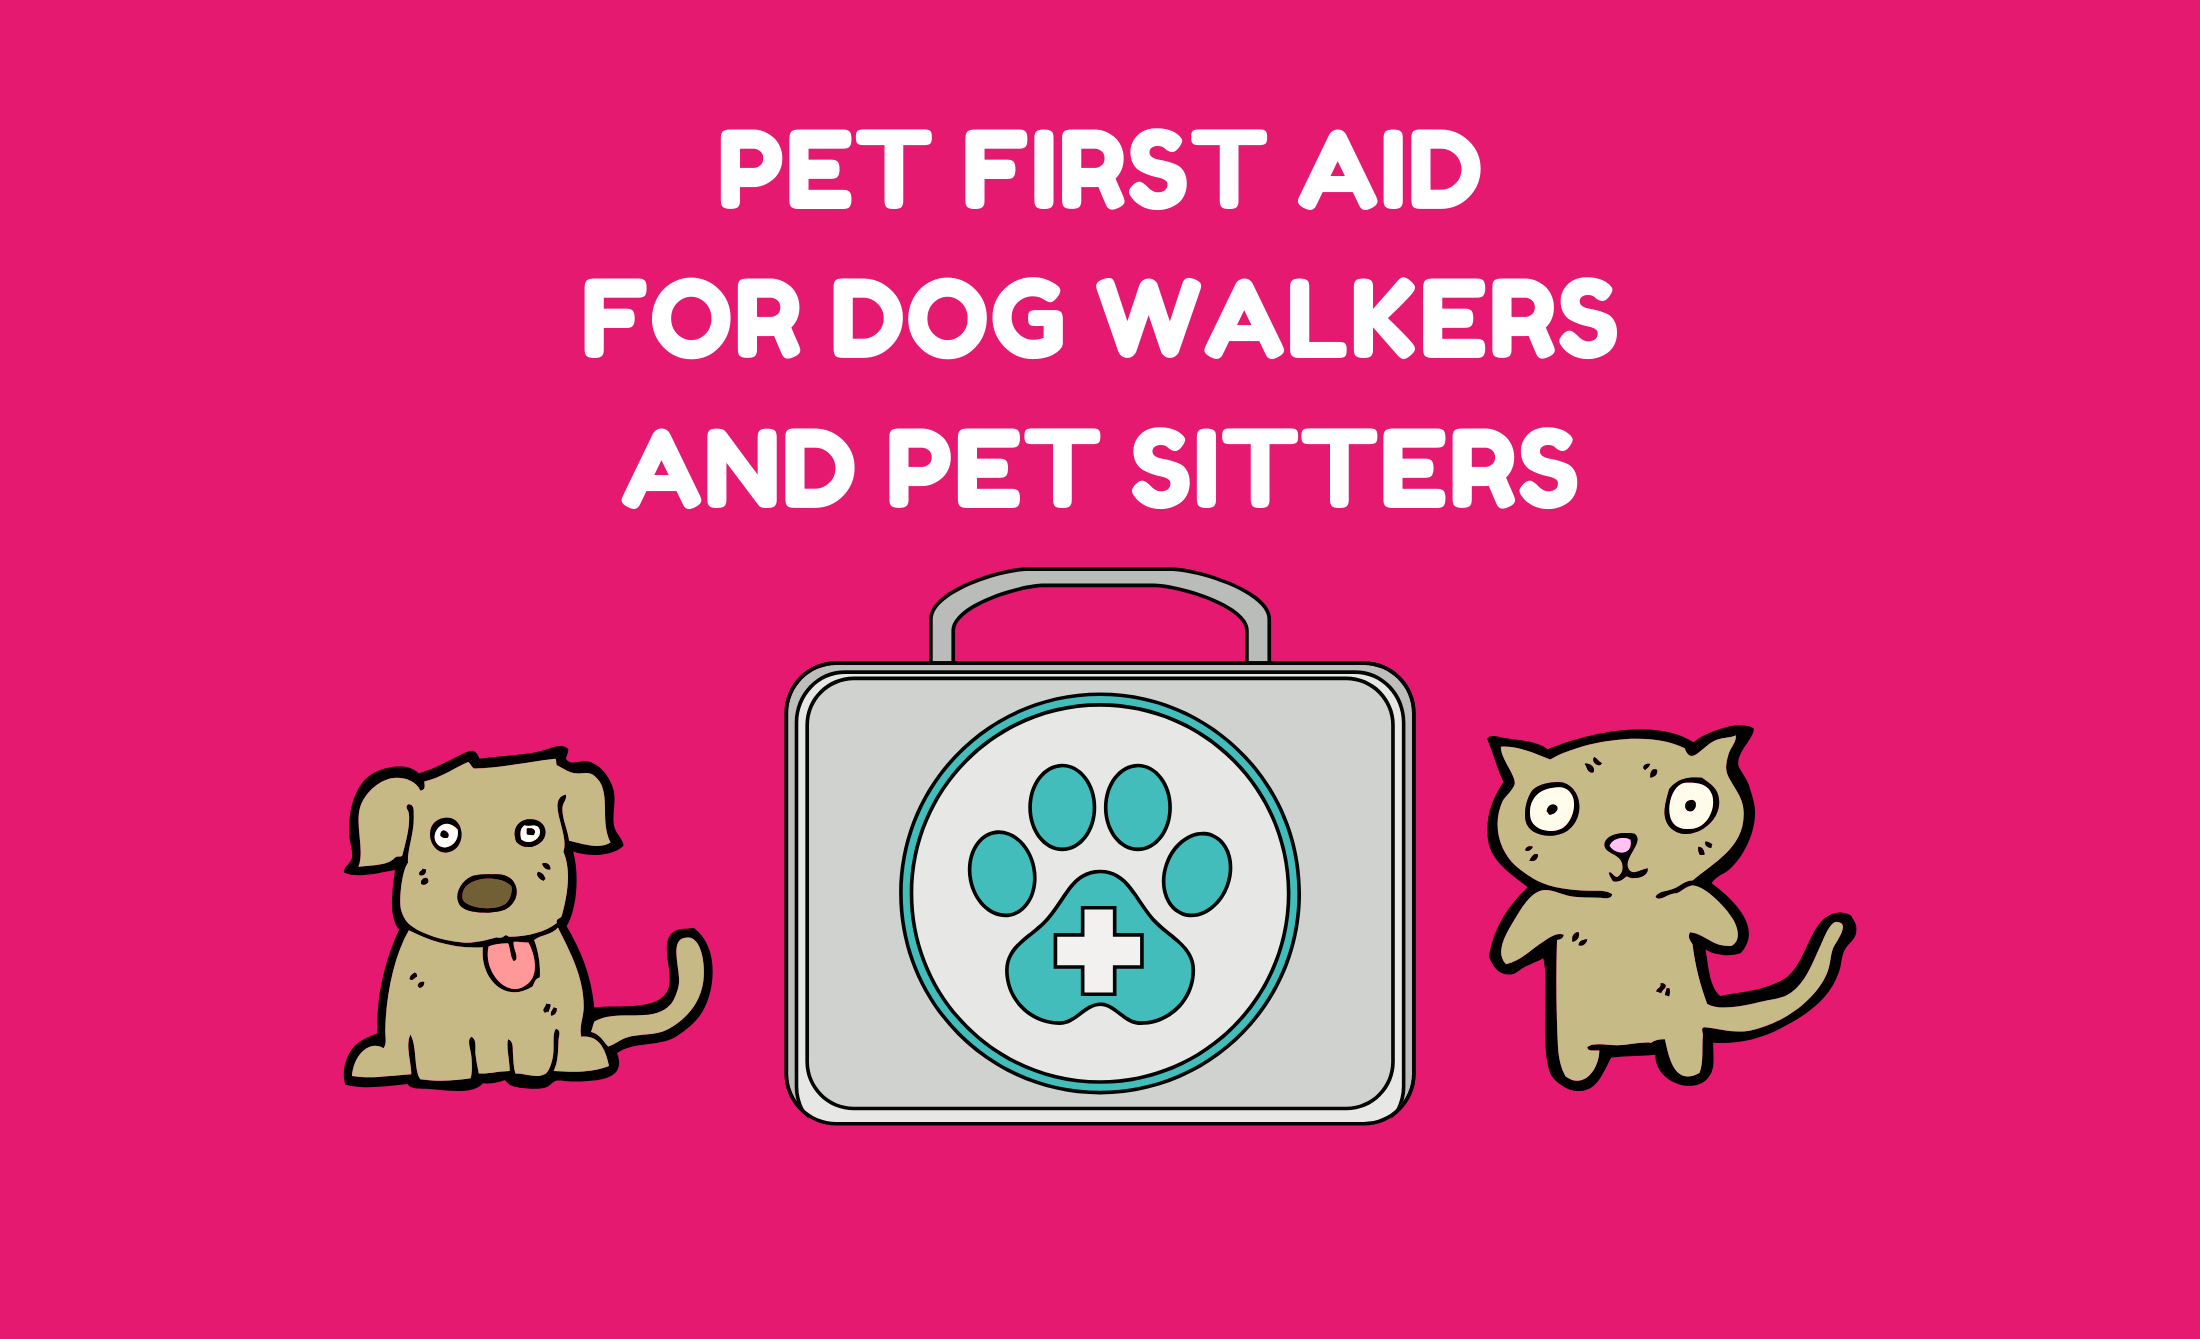 Pet-first-aid-for-dog-walkers-and-pet-sitters